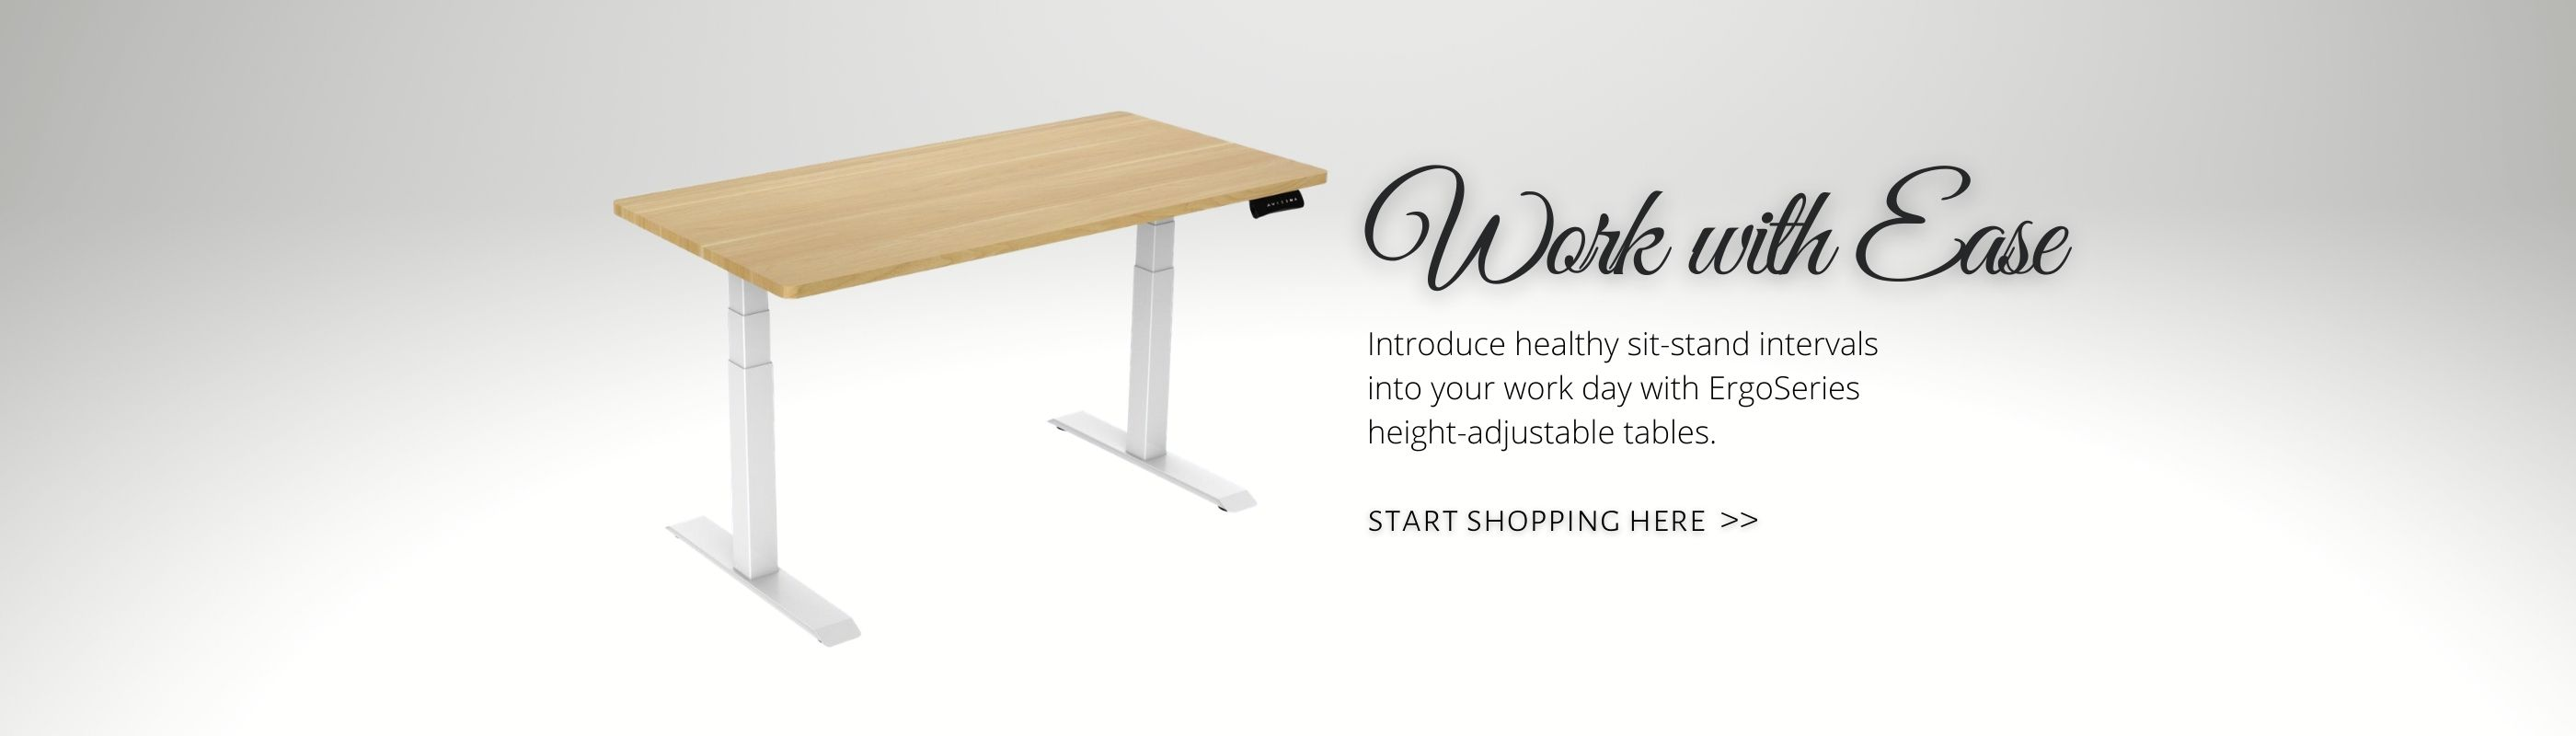 Adjustable Table with Wood Top_Offitek